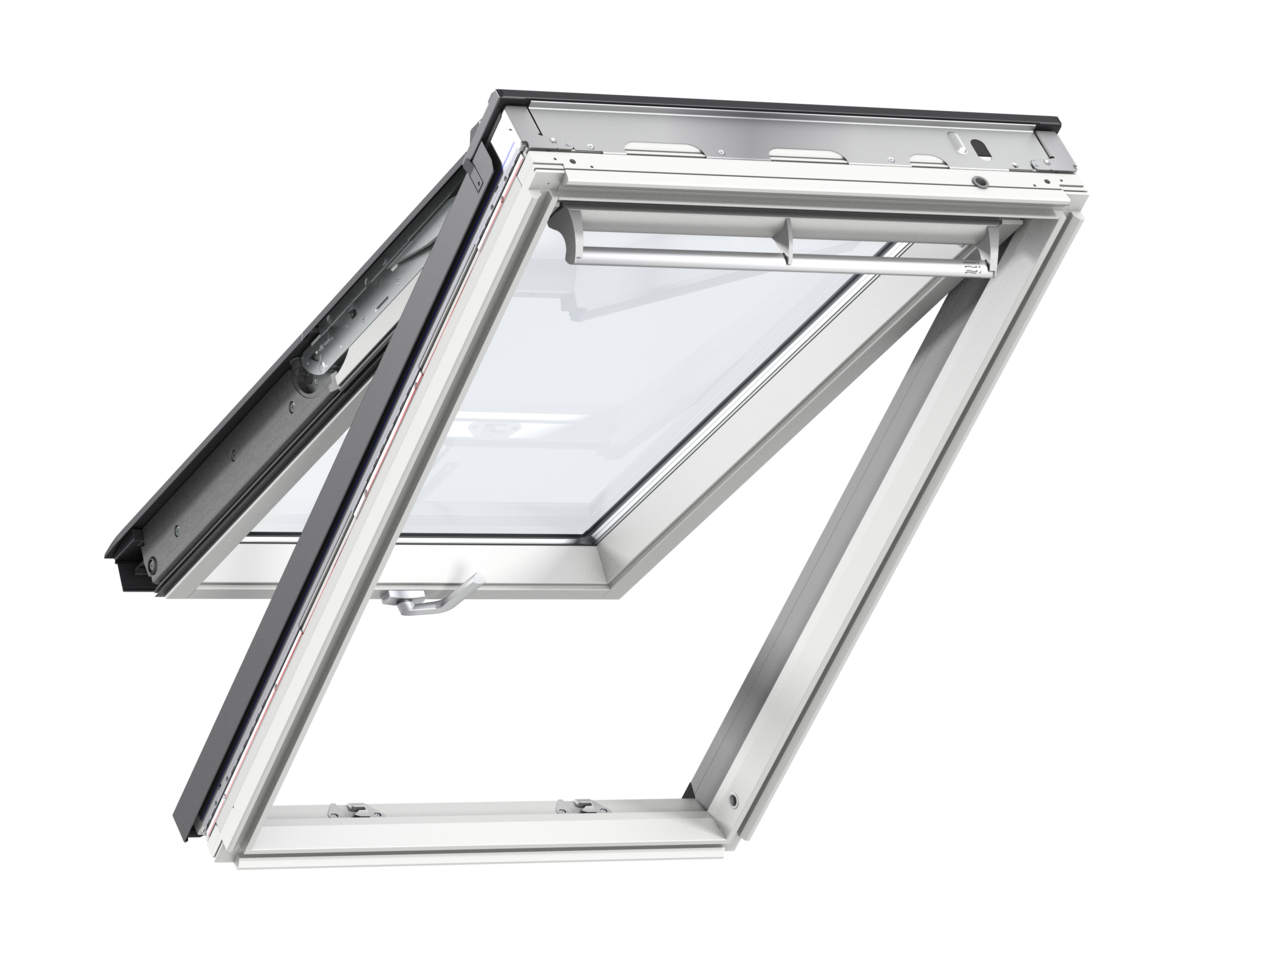 Velux GPL FK06 660 x 1180mm Top Hung 66Pane Roof Window - White Painted